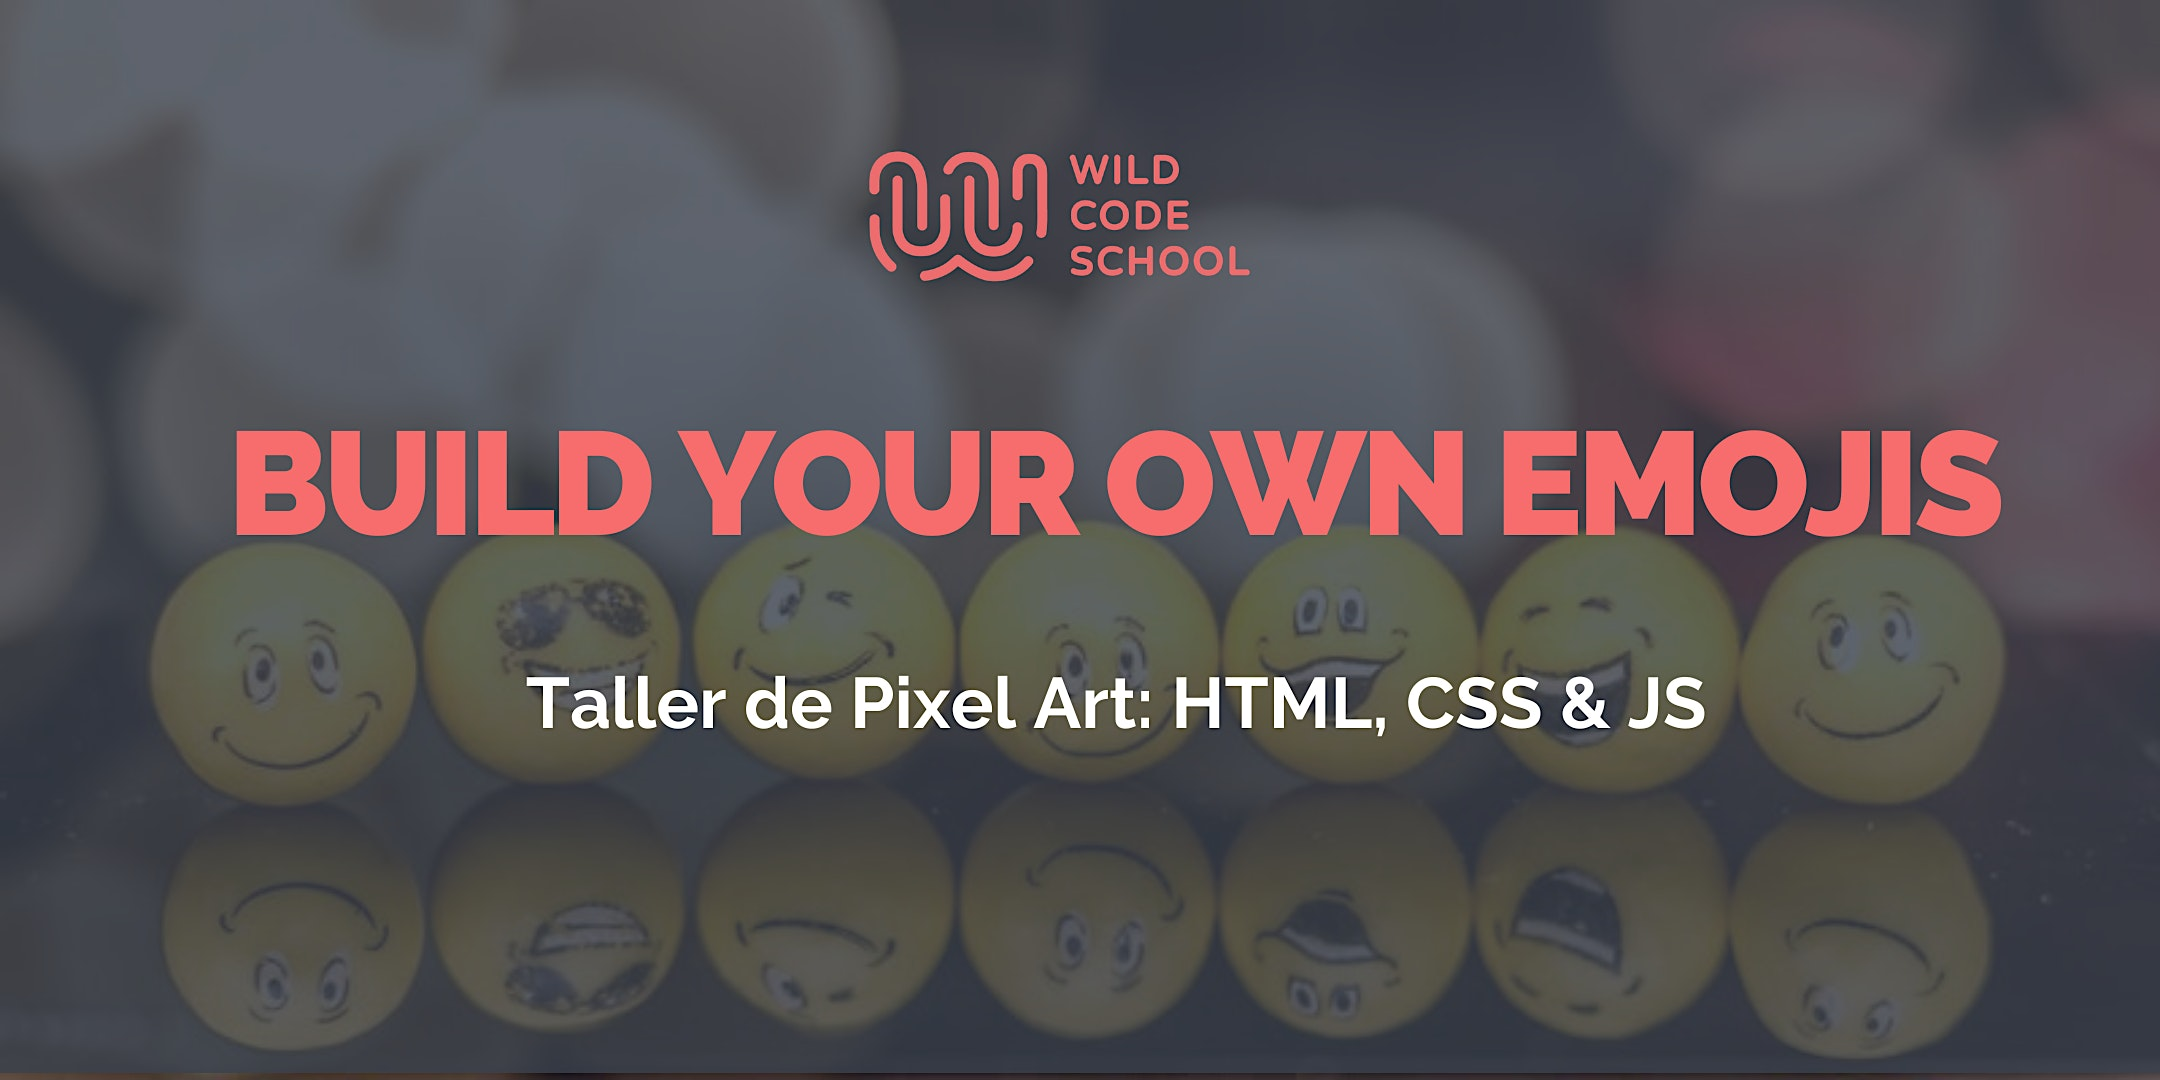 FREE CODING Workshop  4 Beginners - HTML, CSS & JS: CREATE YOUR OWN EMOJIS